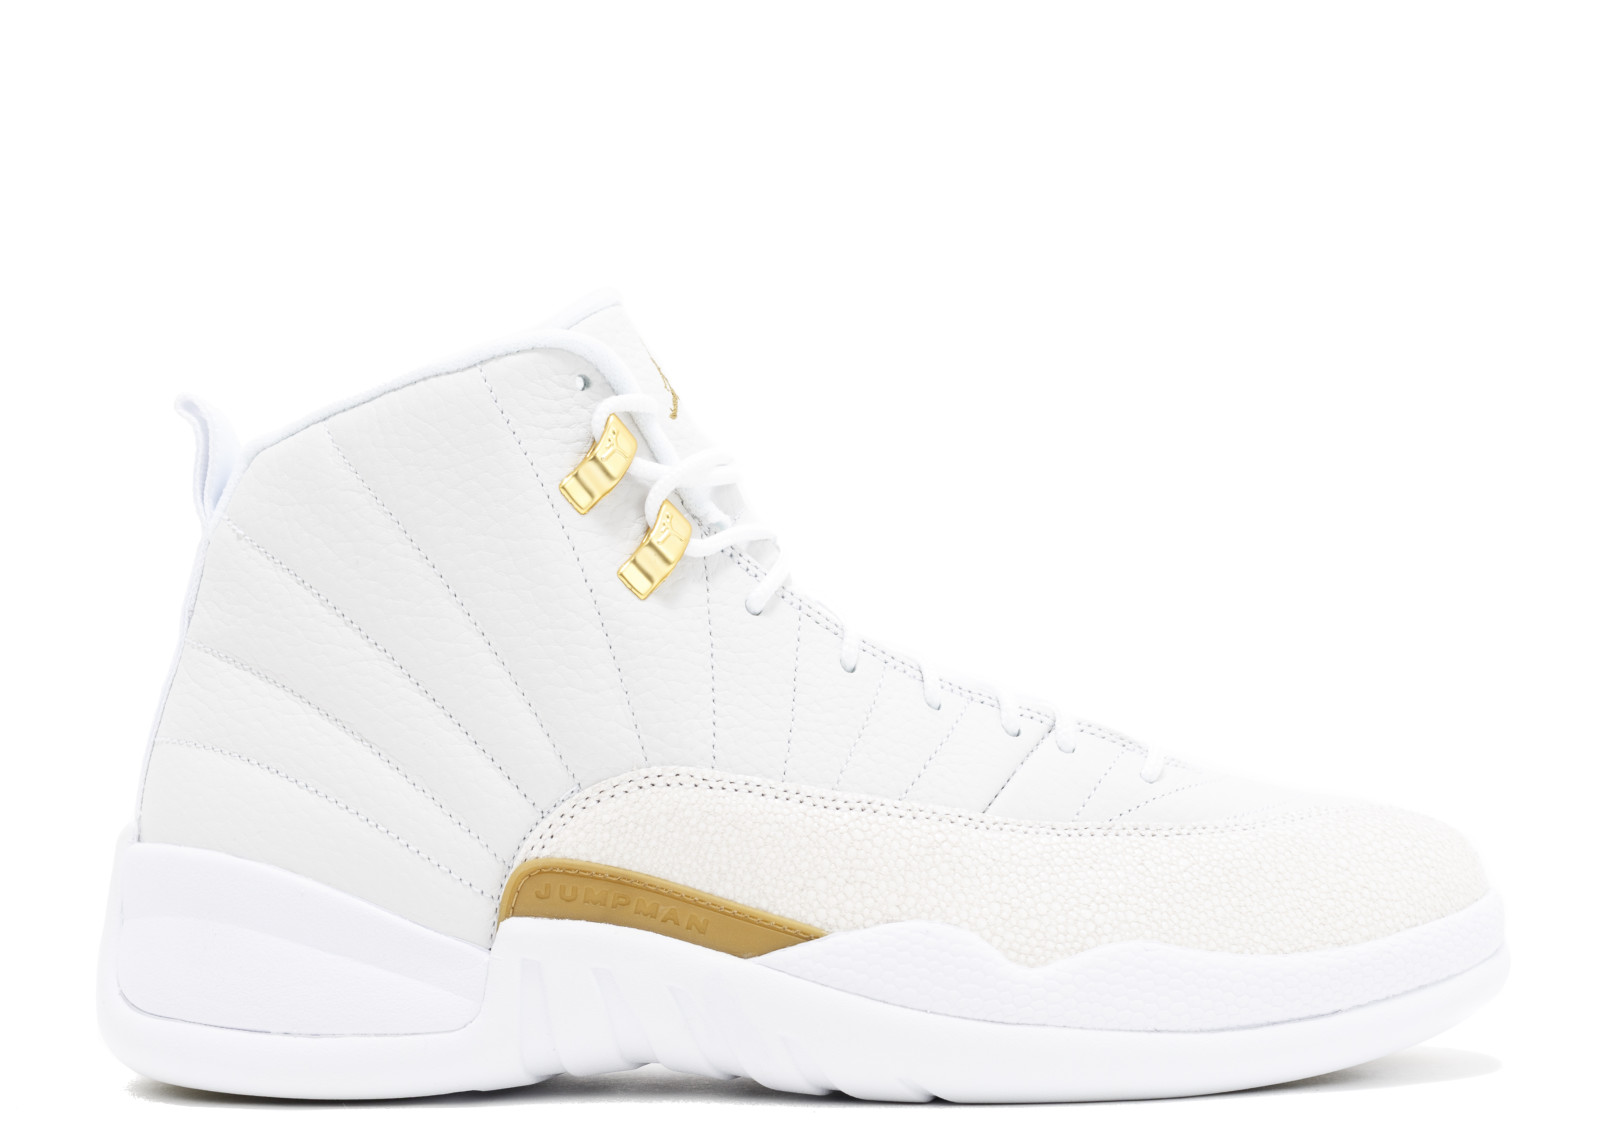 Air Jordan 12 OVO White